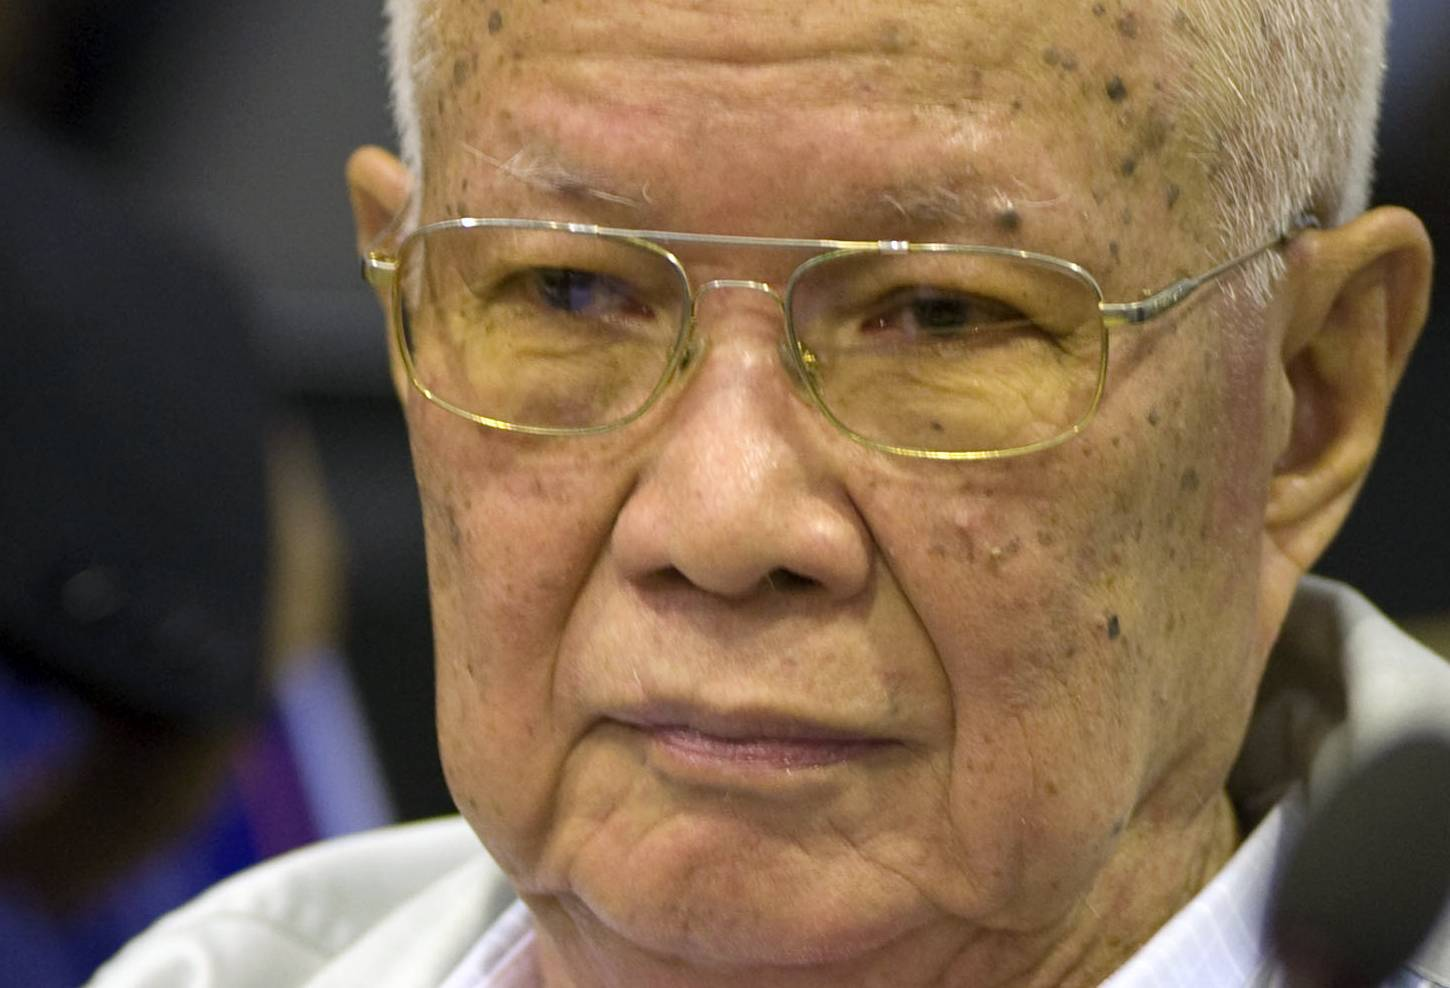 Khieu Samphan, the Khmer Rouge's former head of state, sits inside the courtroom of a U.N.-backed war crimes tribunal in Phnom Penh, Cambodia, Thursday, Aug. 7, 2014. Three and a half decades after the genocidal rule of Cambodia's Khmer Rouge ended, the U.N.-backed tribunal on Thursday sentenced Khieu Samphan and Nuon Chea, two top leaders of the former regime, to life in prison for crimes against humanity during the country's 1970s terror period that left close to 2 million people dead.